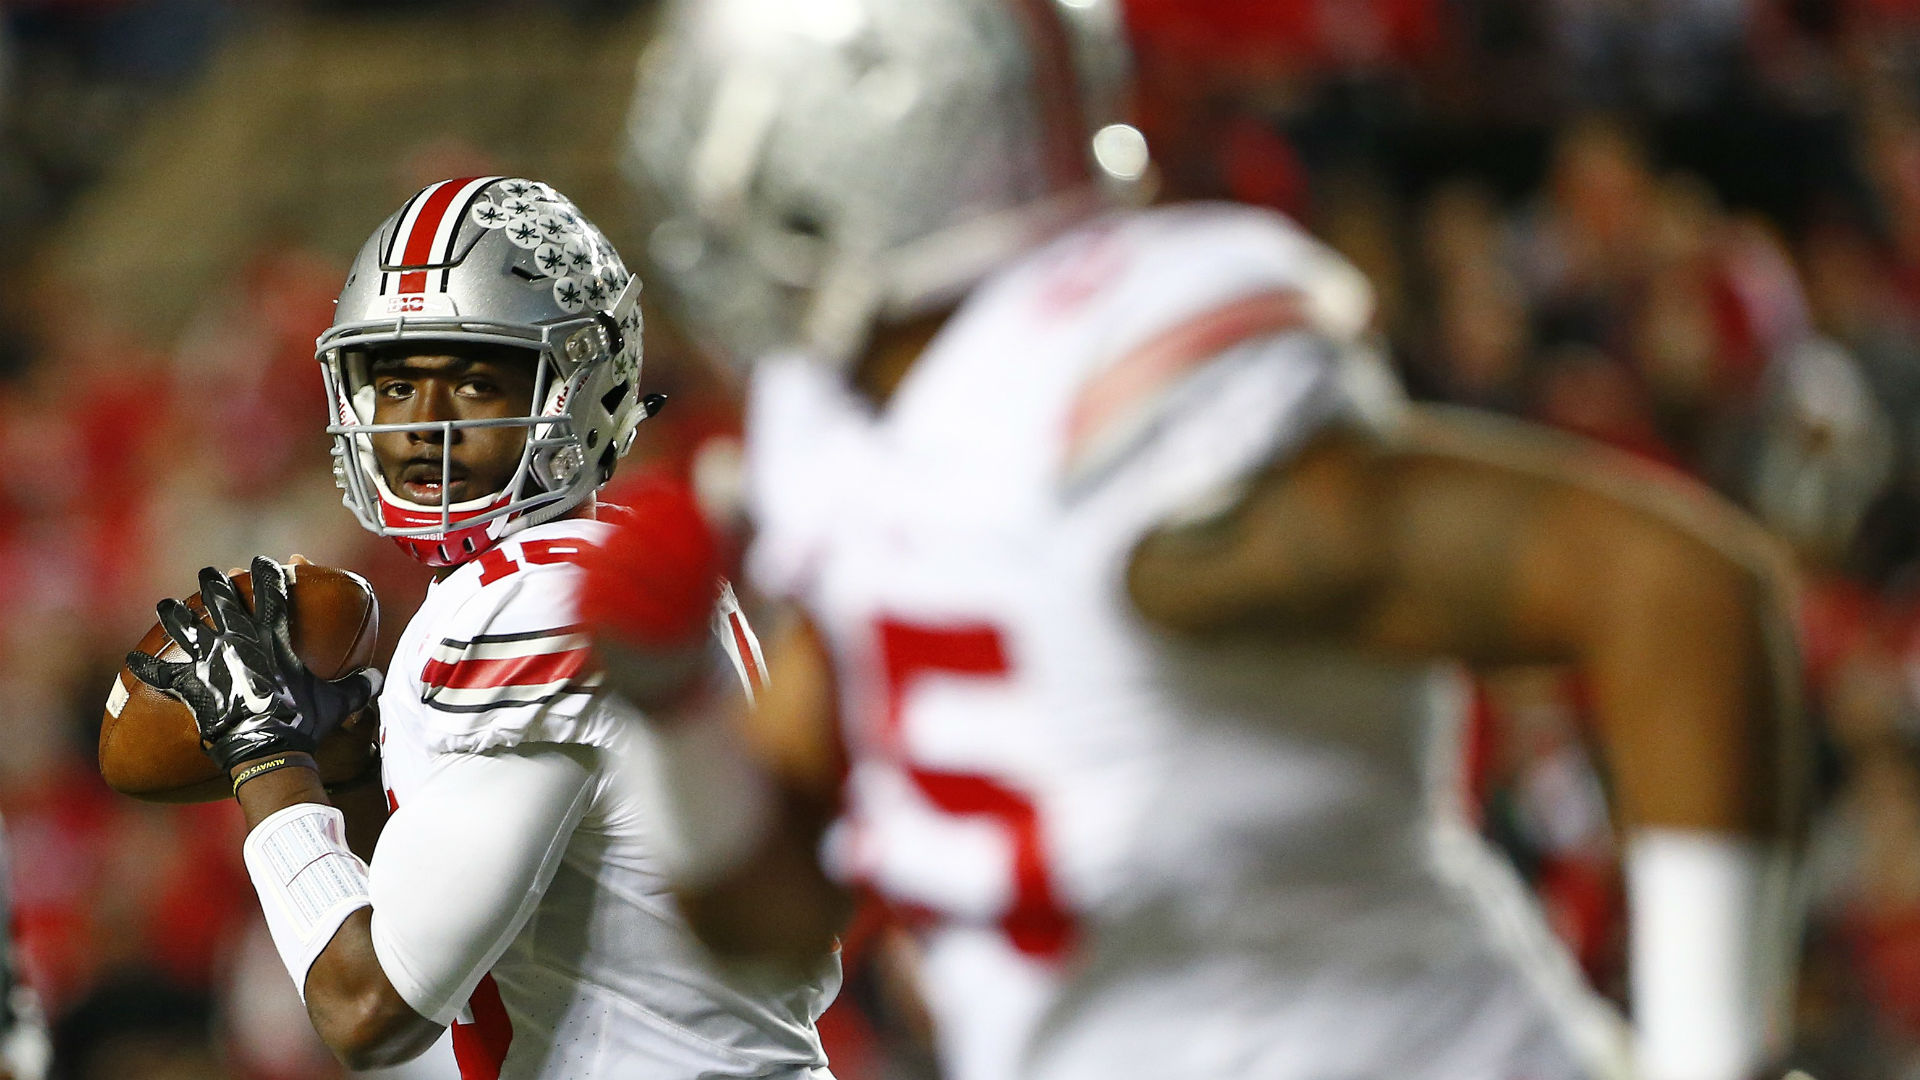 College football picks from Reno – Ohio State, Iowa State finishing strong